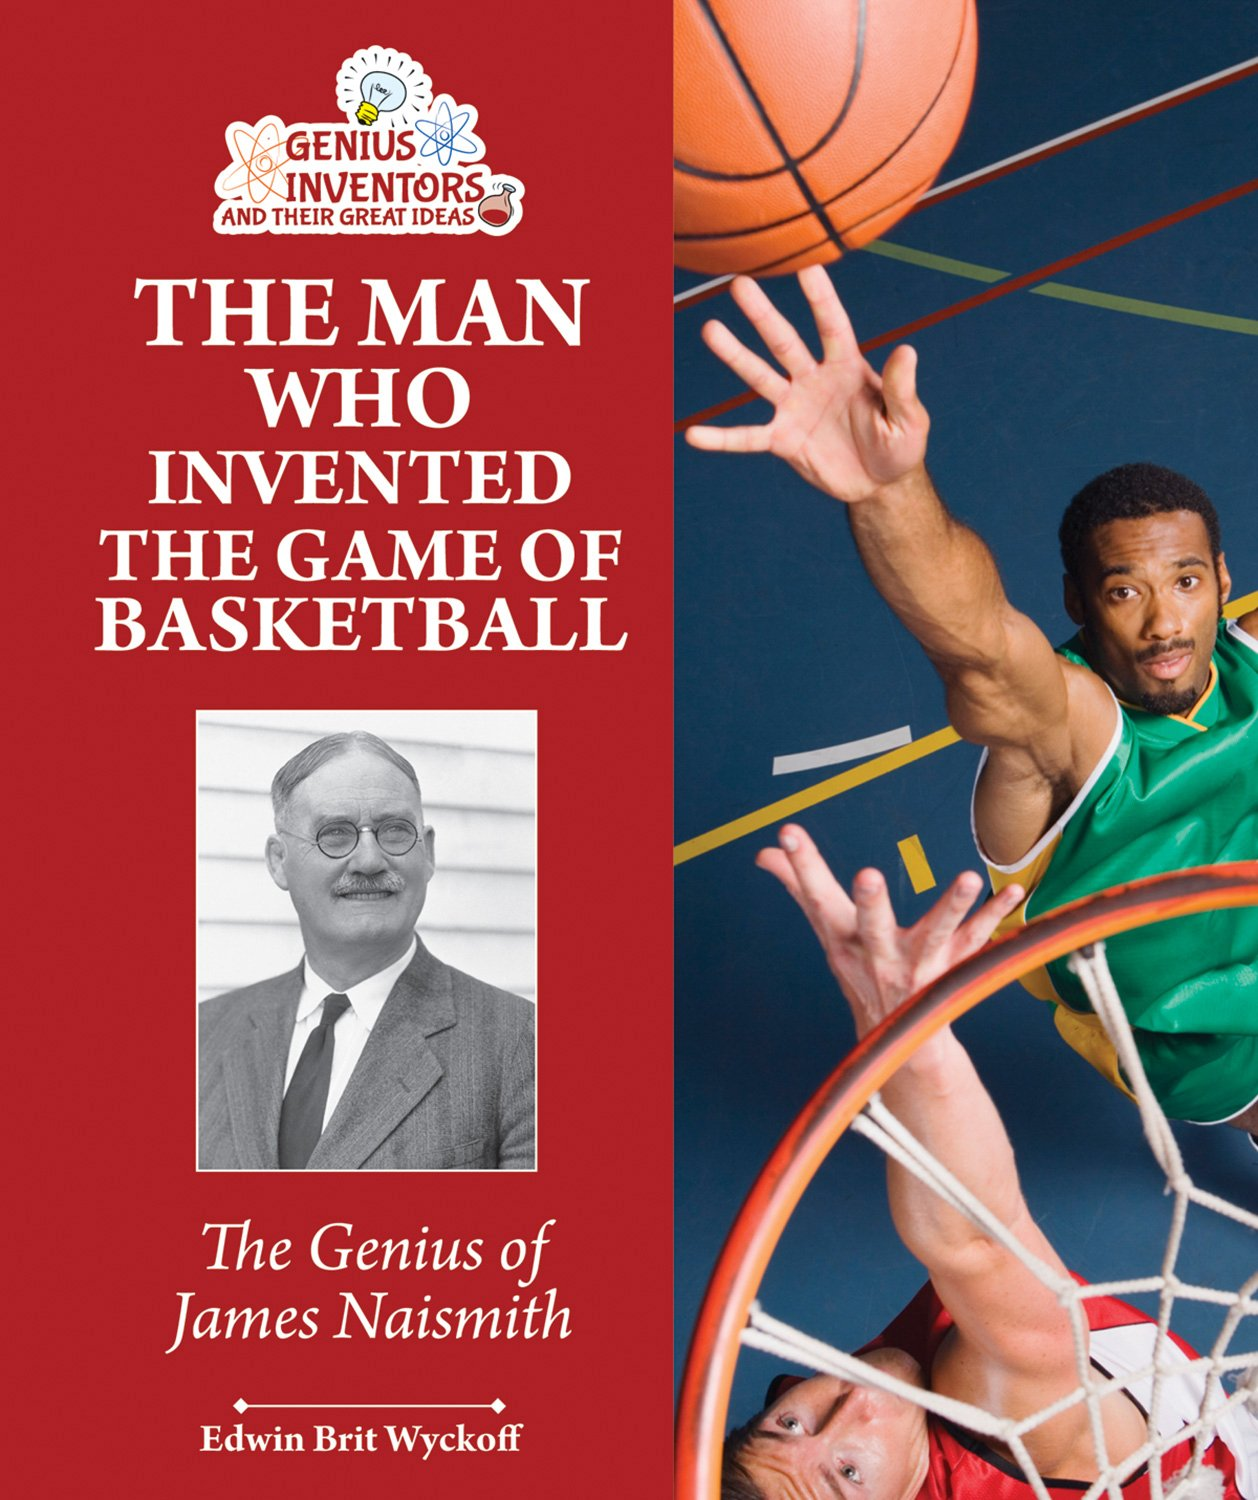 The Man Who Invented The Game Of Basketball The Genius Of James Naismith Genius Inventors And Their Great Ideas Wyckoff Edwin Brit 9781464402128 Amazon Com Books